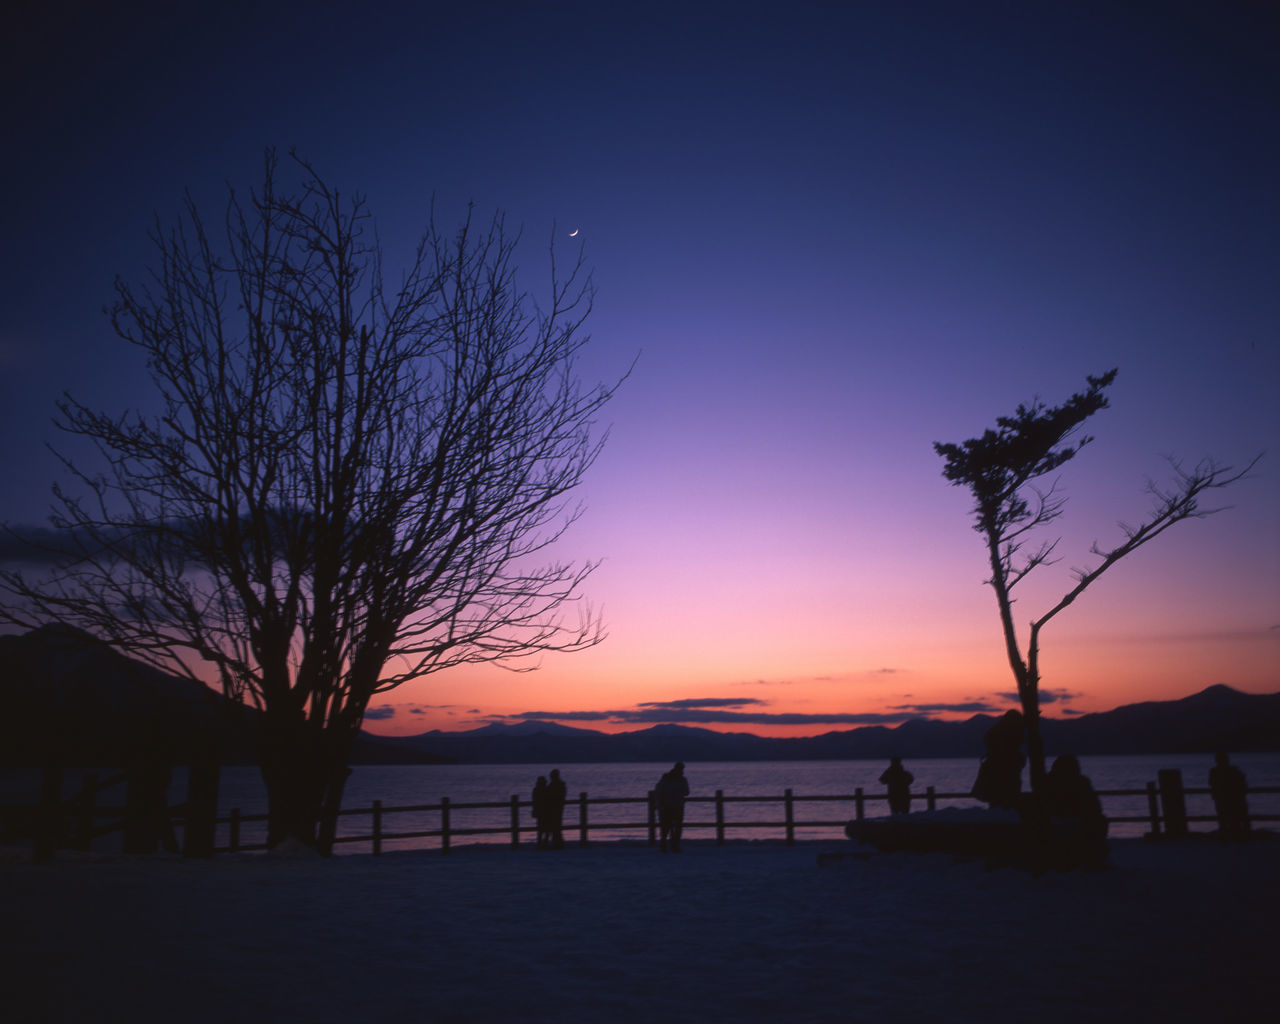 Beauty In Nature Blue Enjoying Life Eye4photography  EyeEm EyeEm Best Shots EyeEm Gallery EyeEm Nature Lover Film Film Photography Fujifilm Hokkaido Holiday Japan Nature Night Pentax PENTAX67 Purple RVP50 Sea Sky Sun Sunset Tree